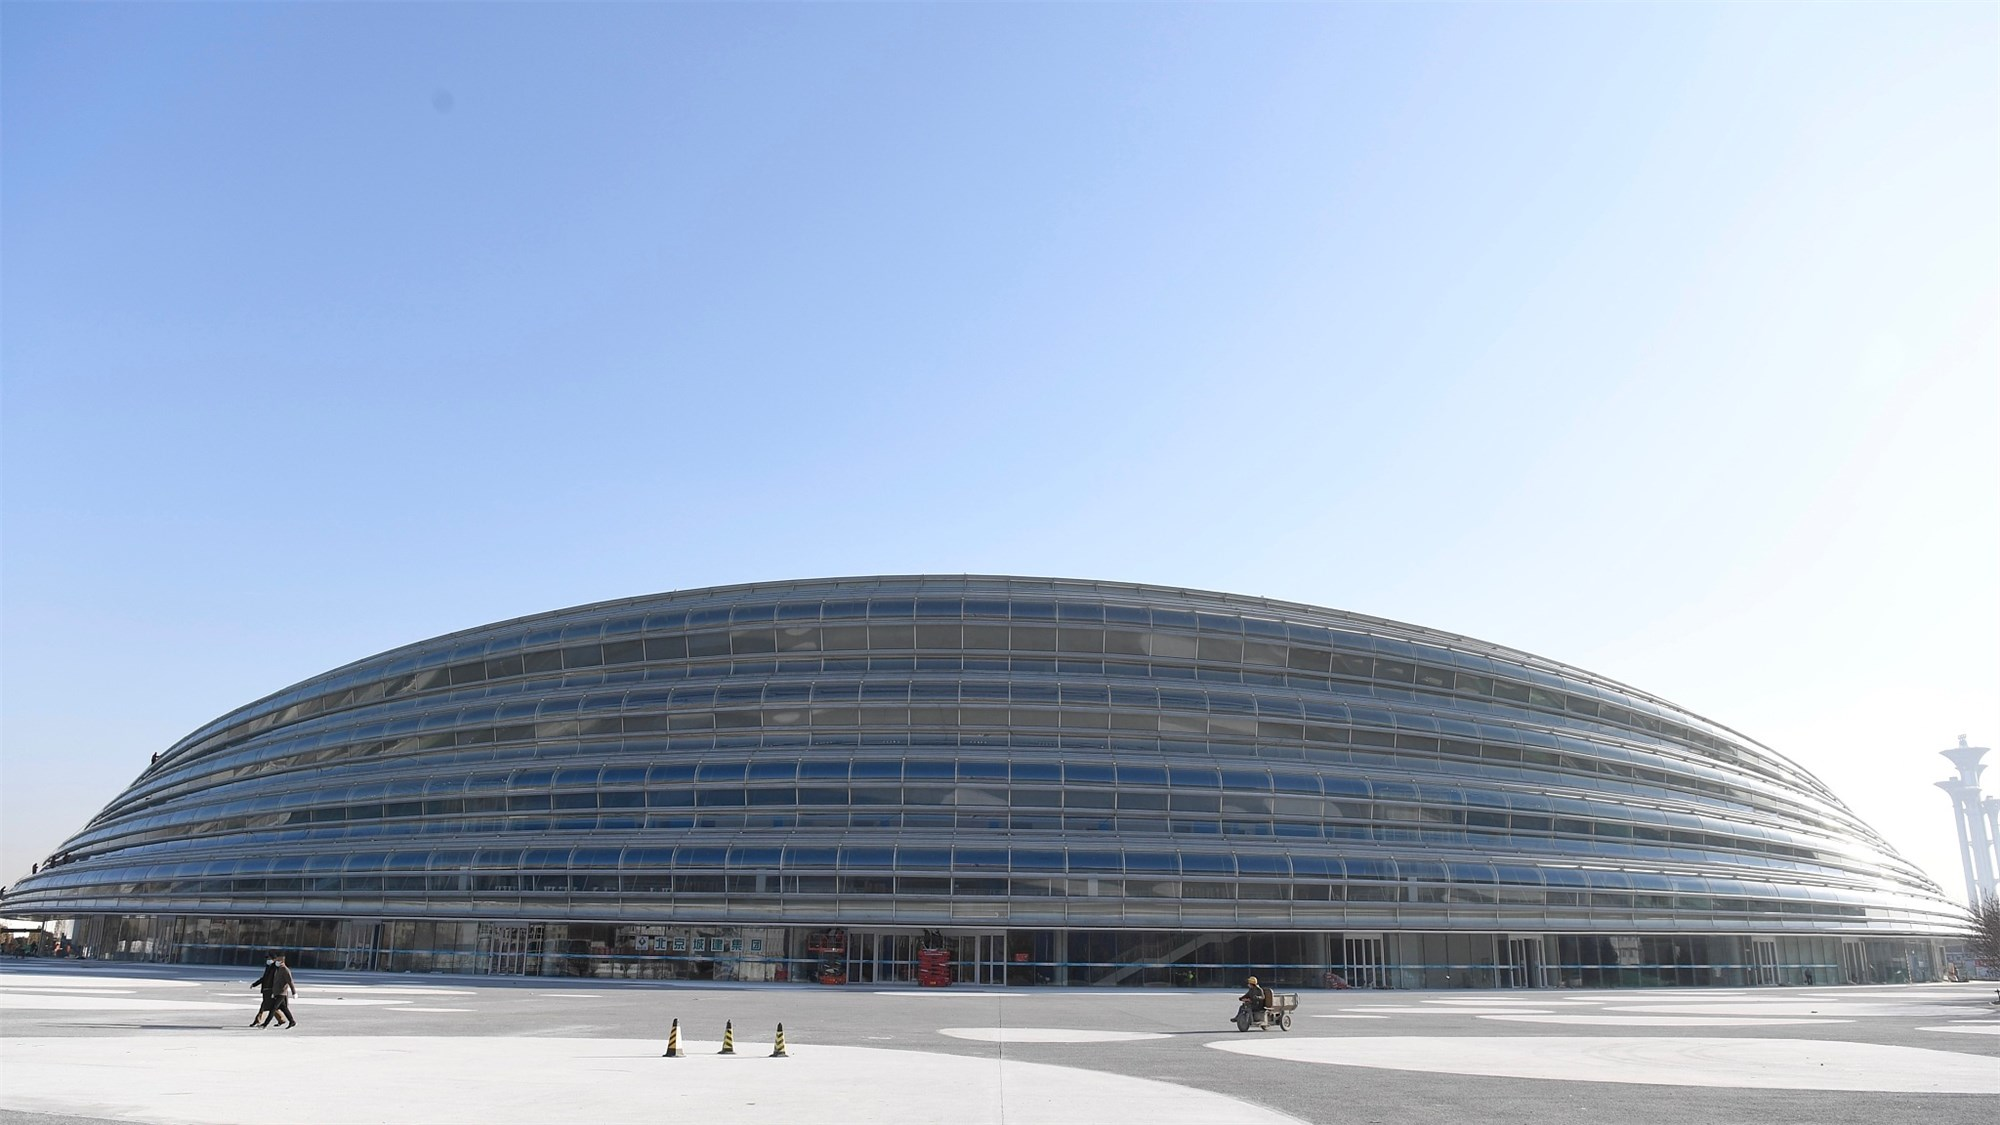 Beijing 2022 Winter Olympics speed skating venue completed